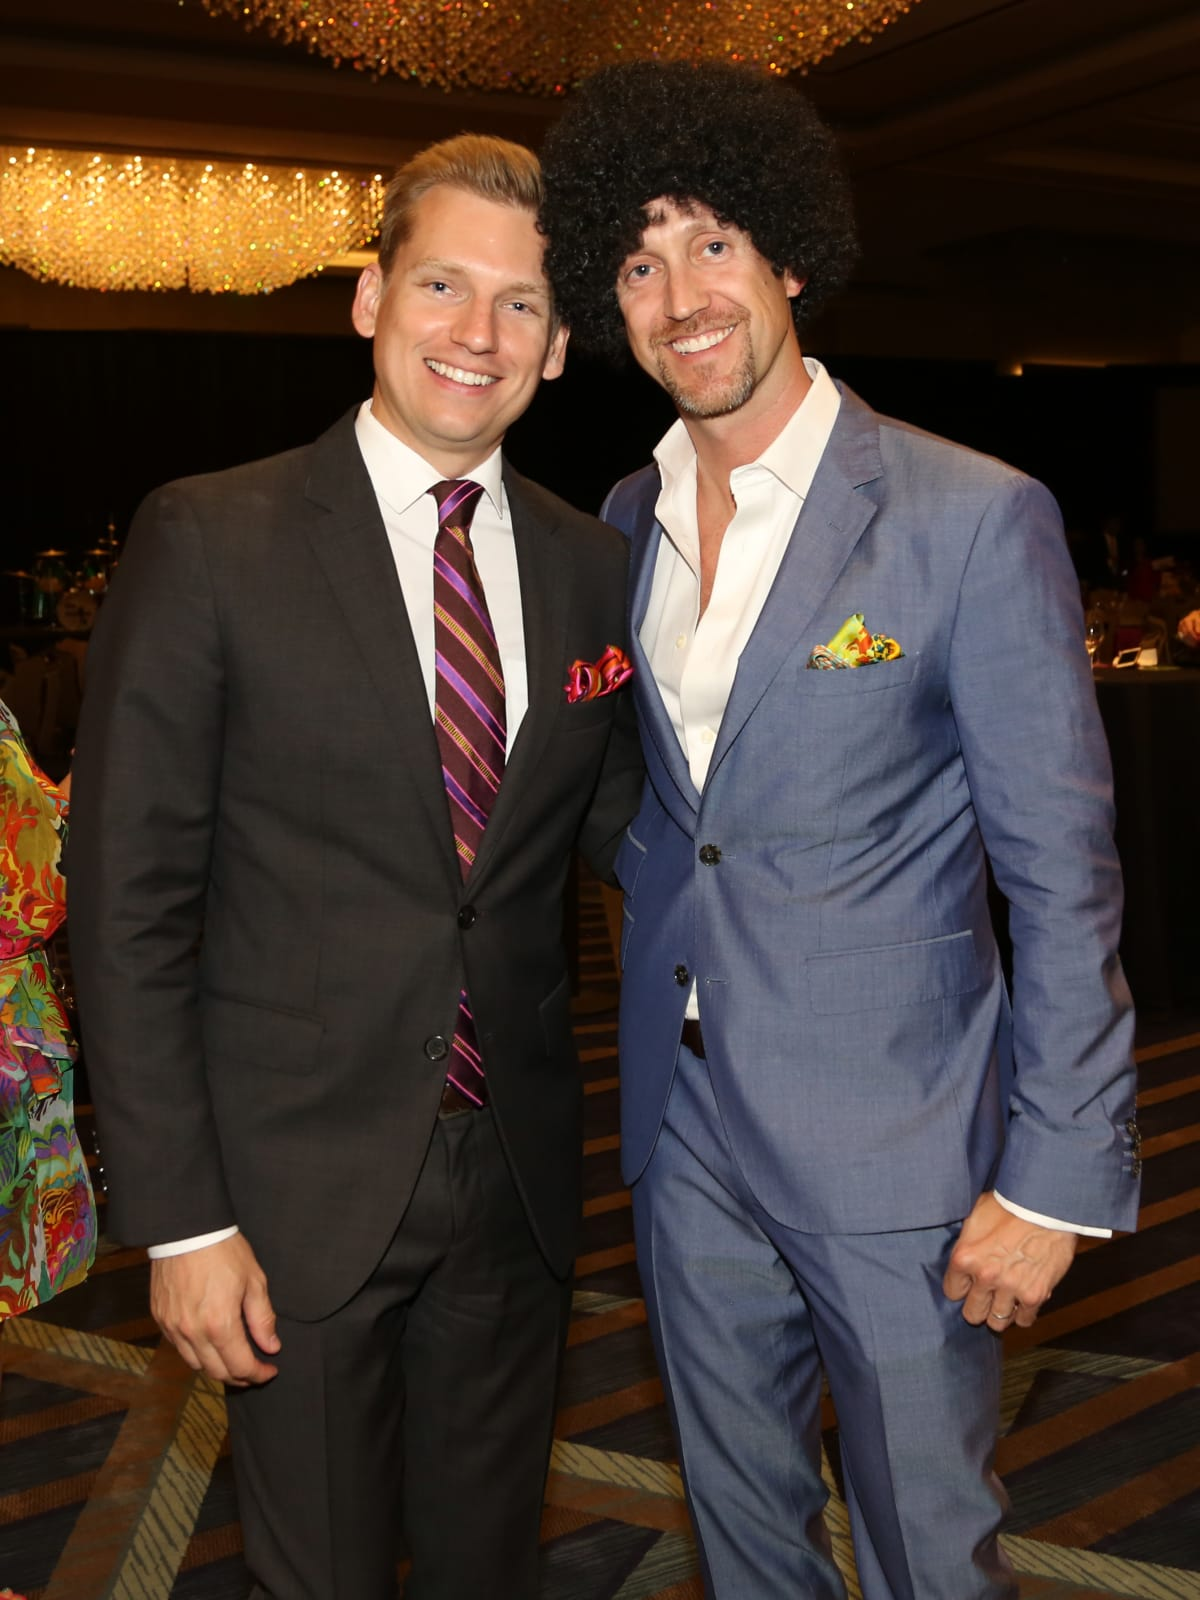 Houston Area Women's Center Gala,   Kyle Dutton and Mike Mahlstedt